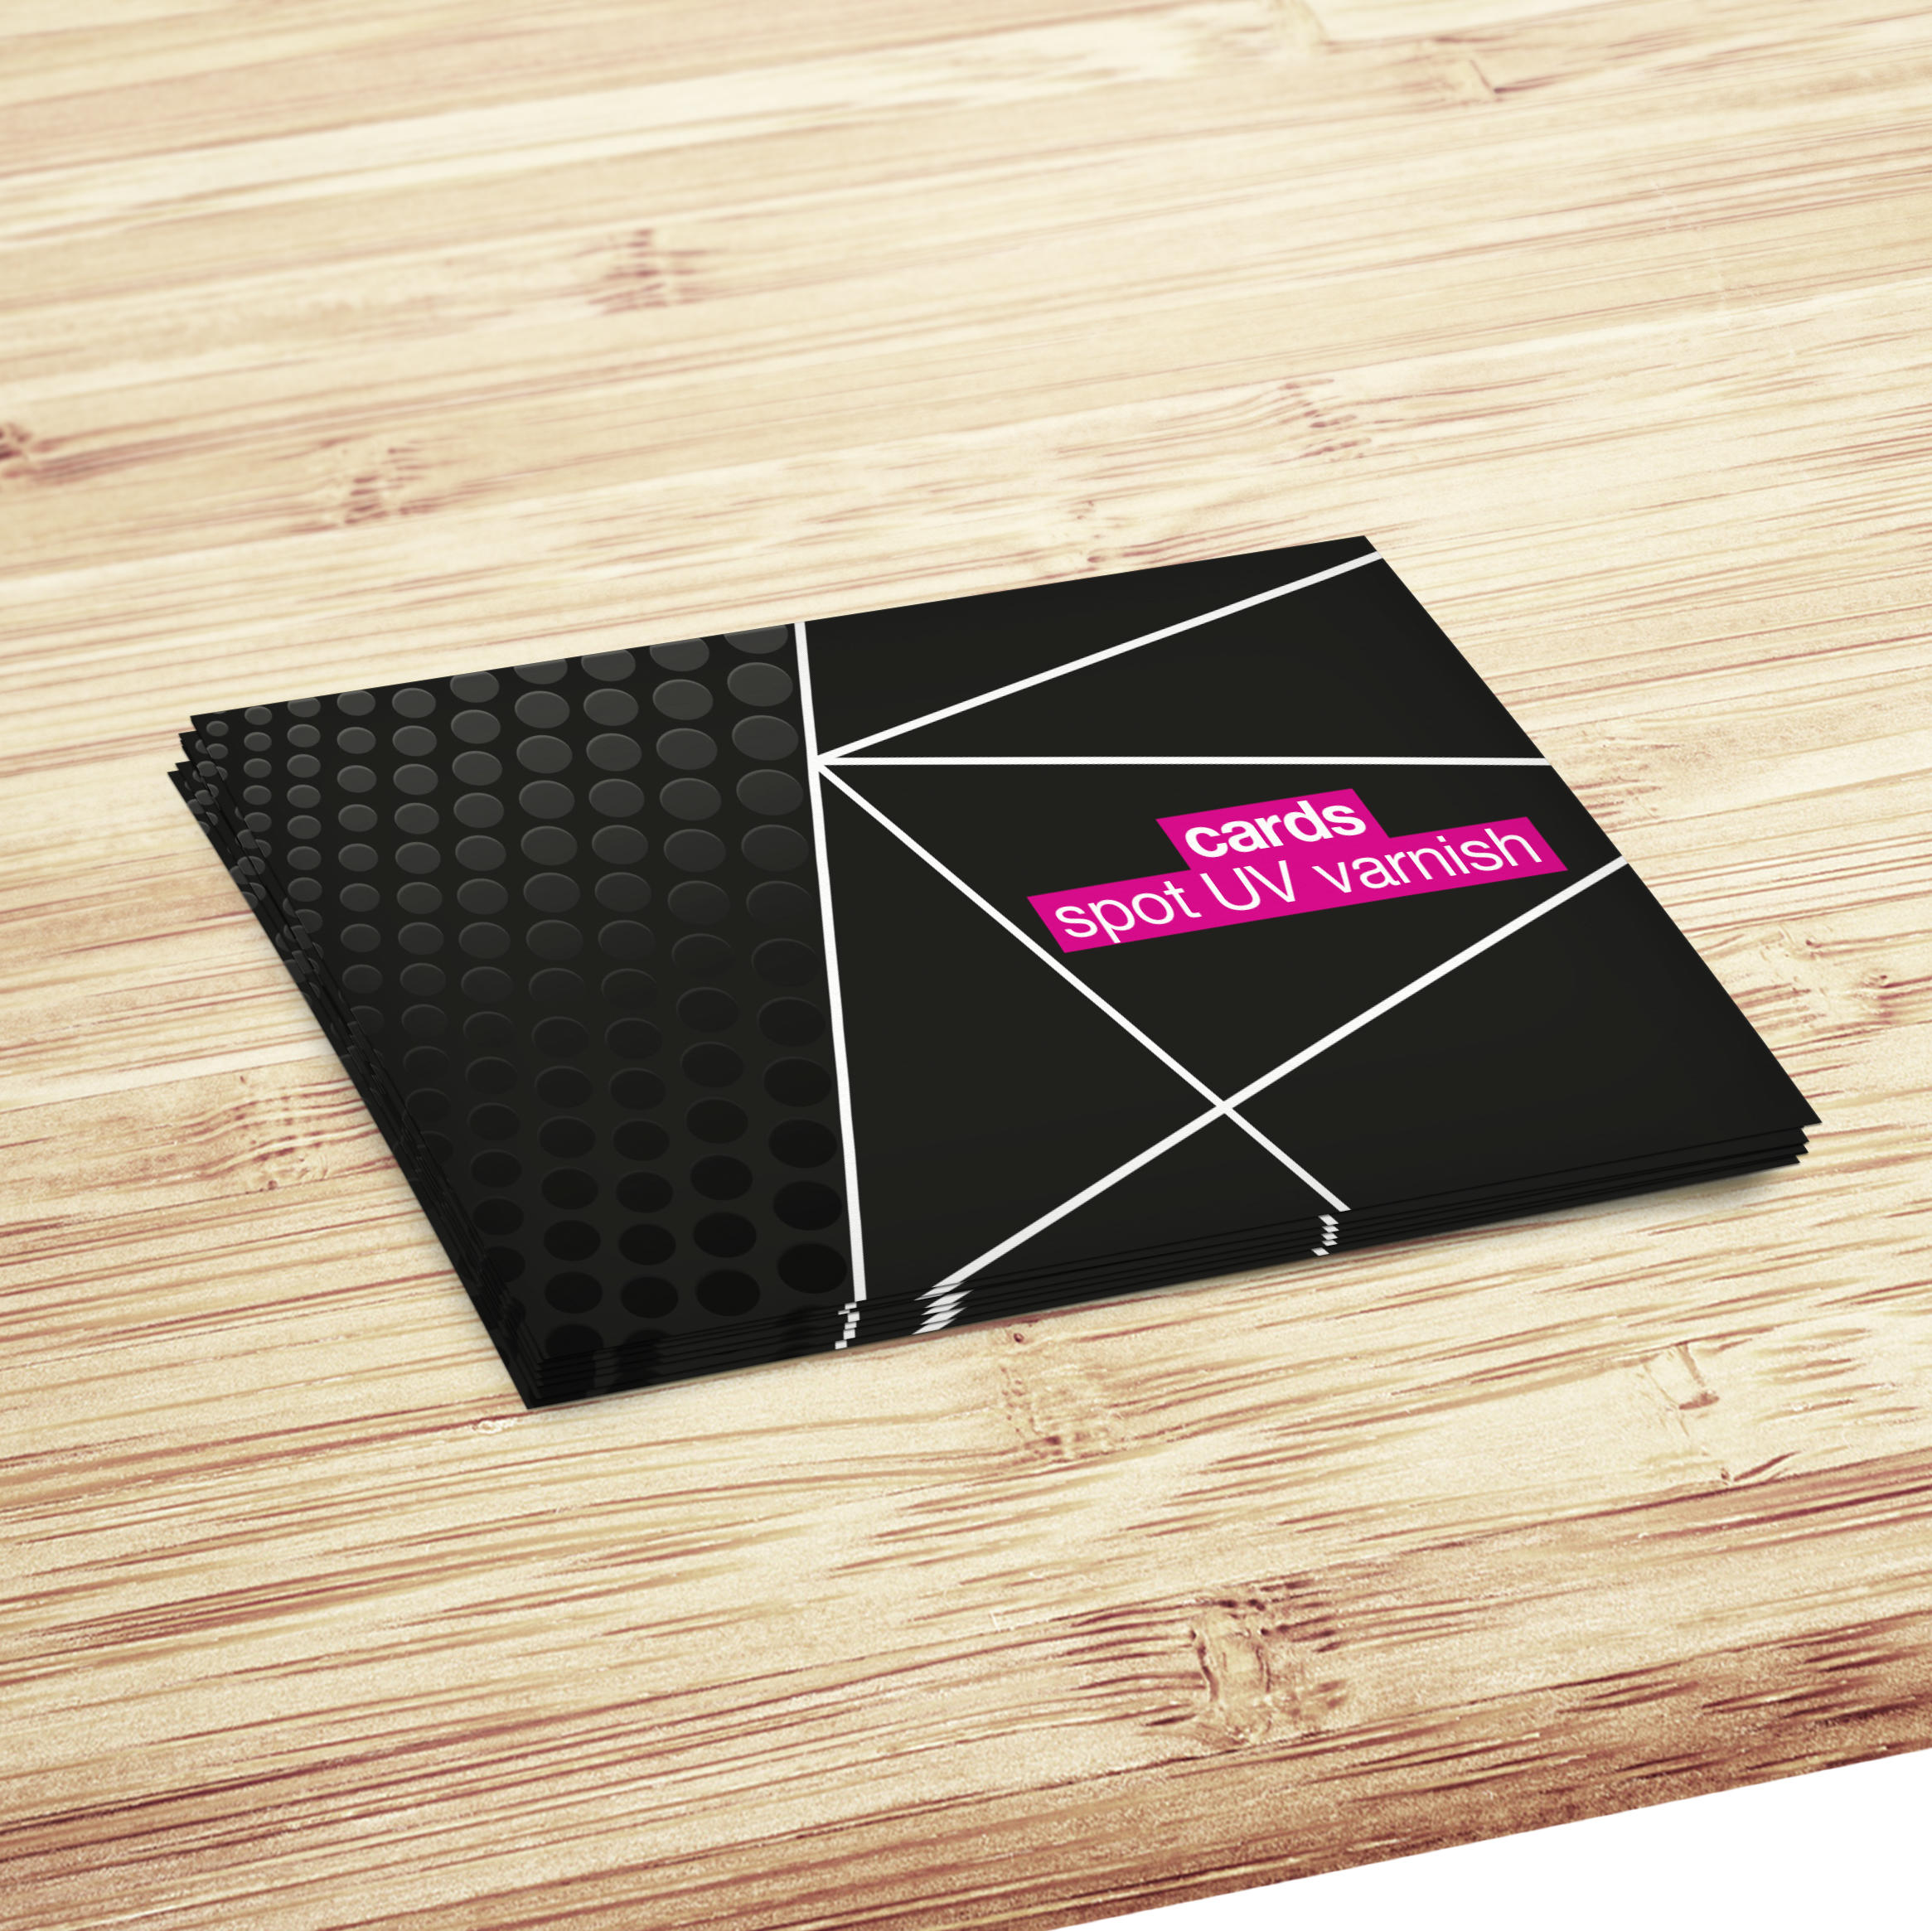 Spot UV Gloss & Soft Touch Laminate Business Cards - 54x85mm